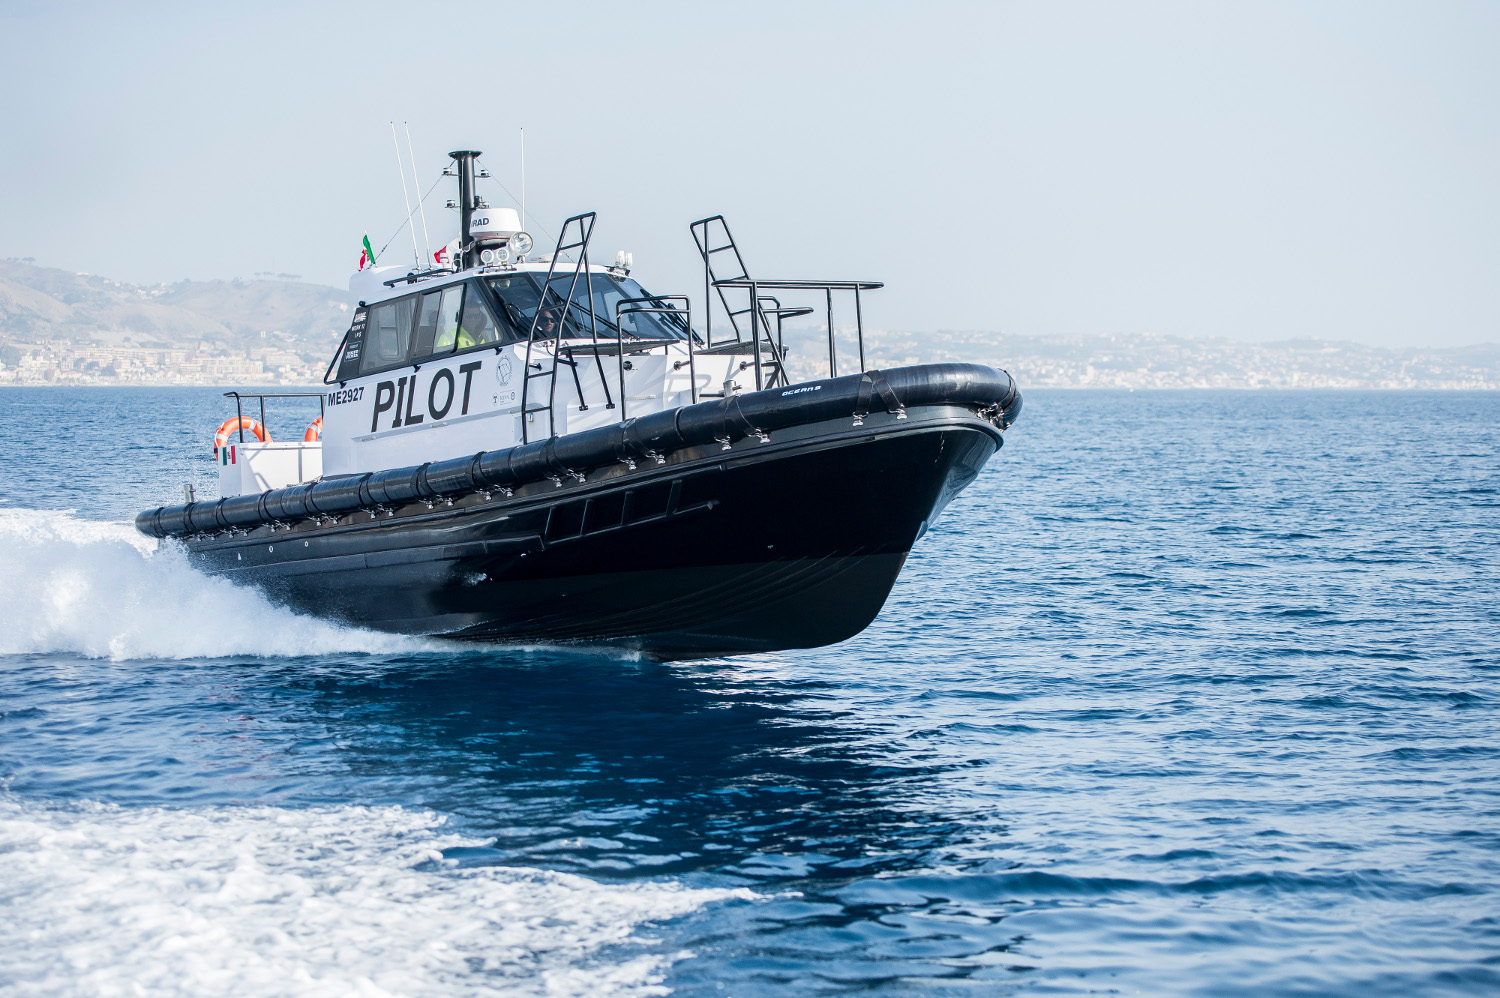 Stretto di Messina Pilotina Bellcraft Volvo Penta Italia